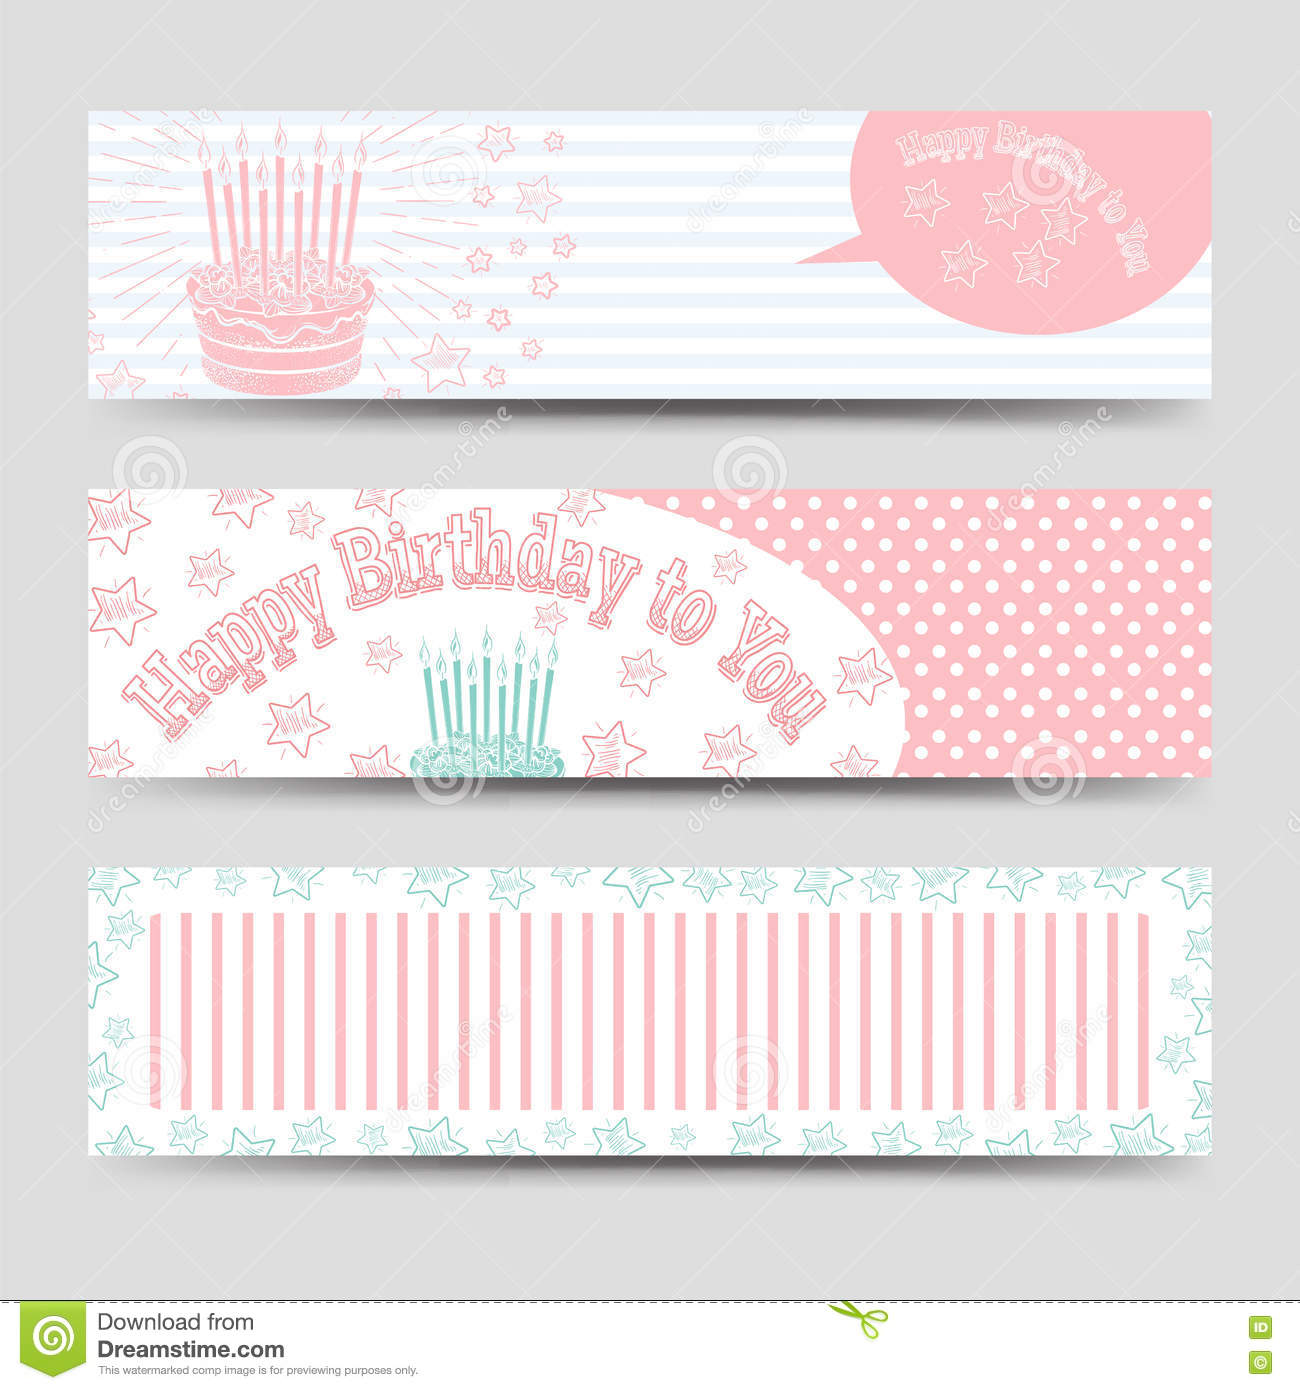 birthday banners template with cake stock vector illustration of